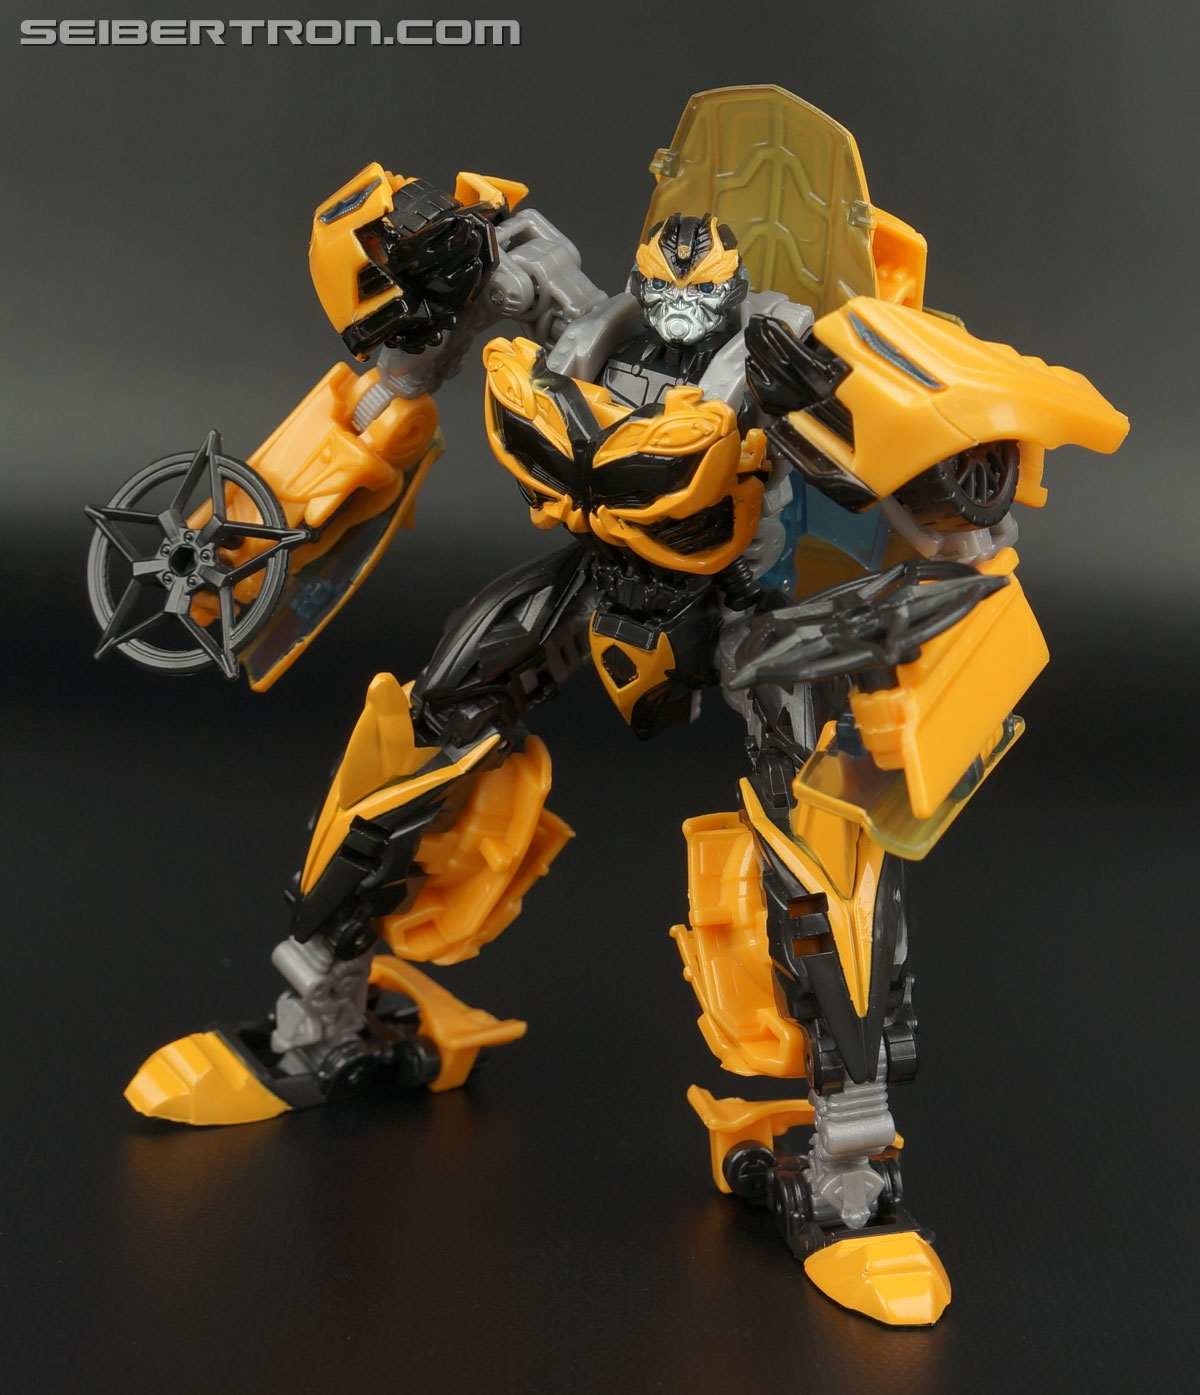 Transformers Age of Extinction: Generations Bumblebee (Image #125 of 190)